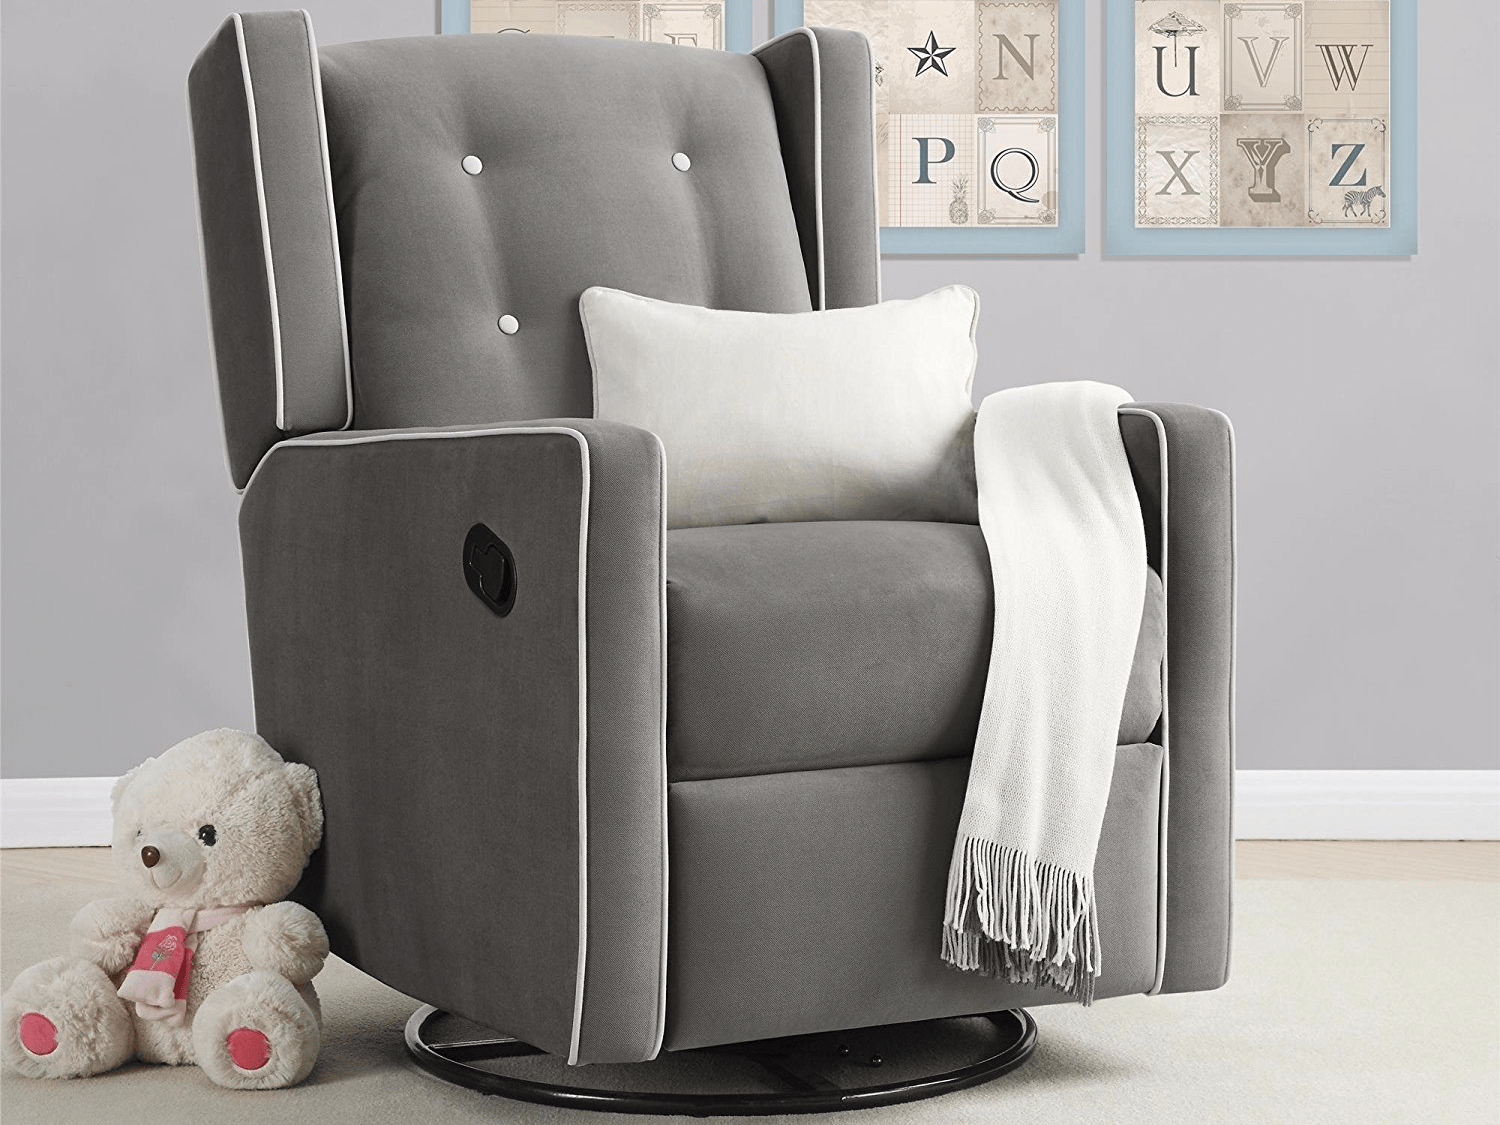 Nursing Chair Brisbane The Best Gliders And Rocking Chairs You Can Buy On Amazon